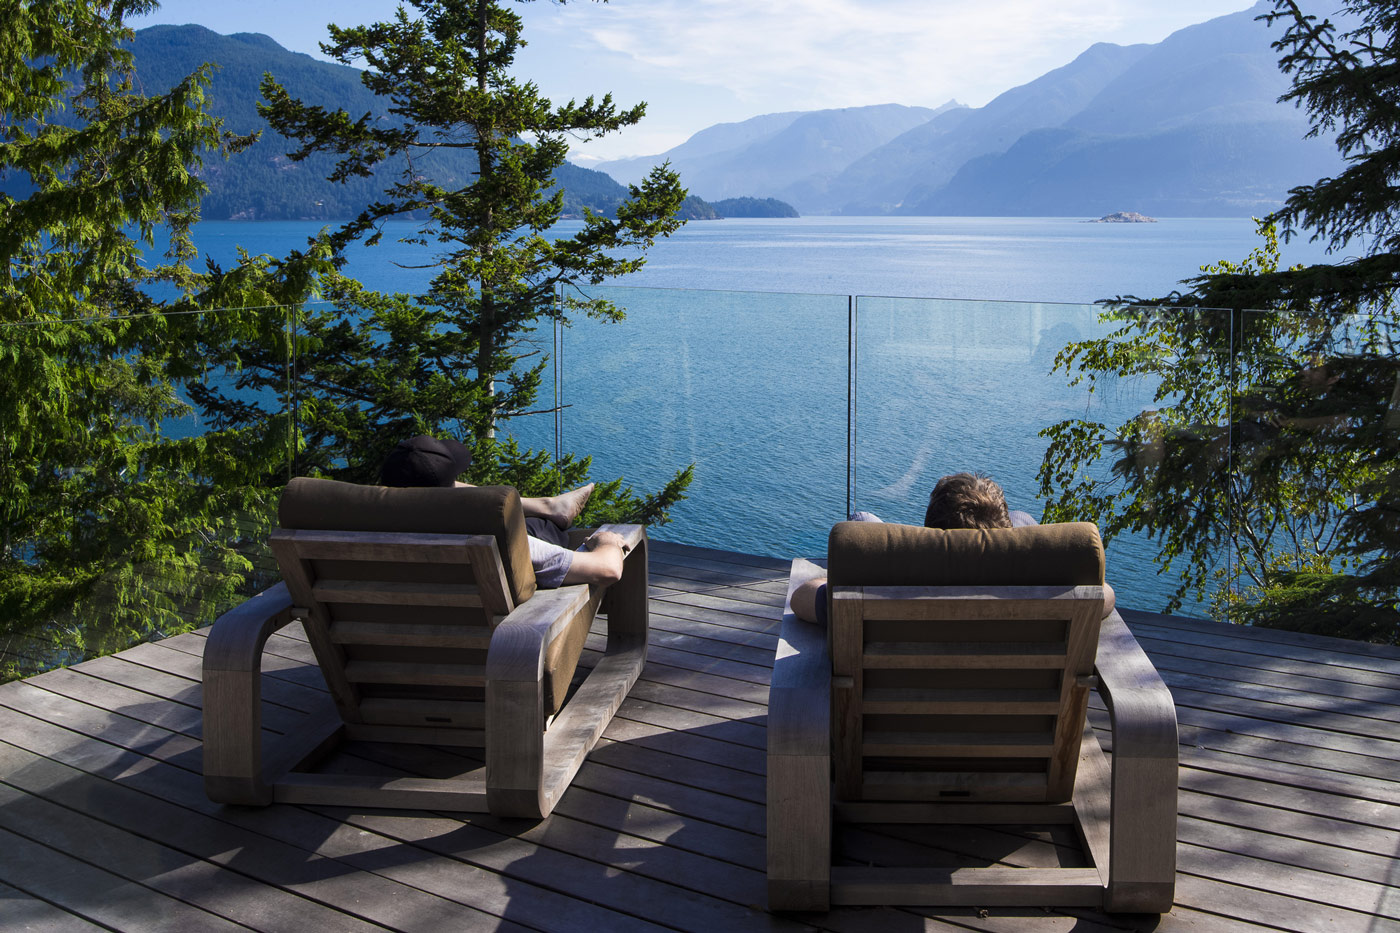 Water & Mountain Views, Balcony, Glass Balustrading, House on Gambier Island, British Columbia